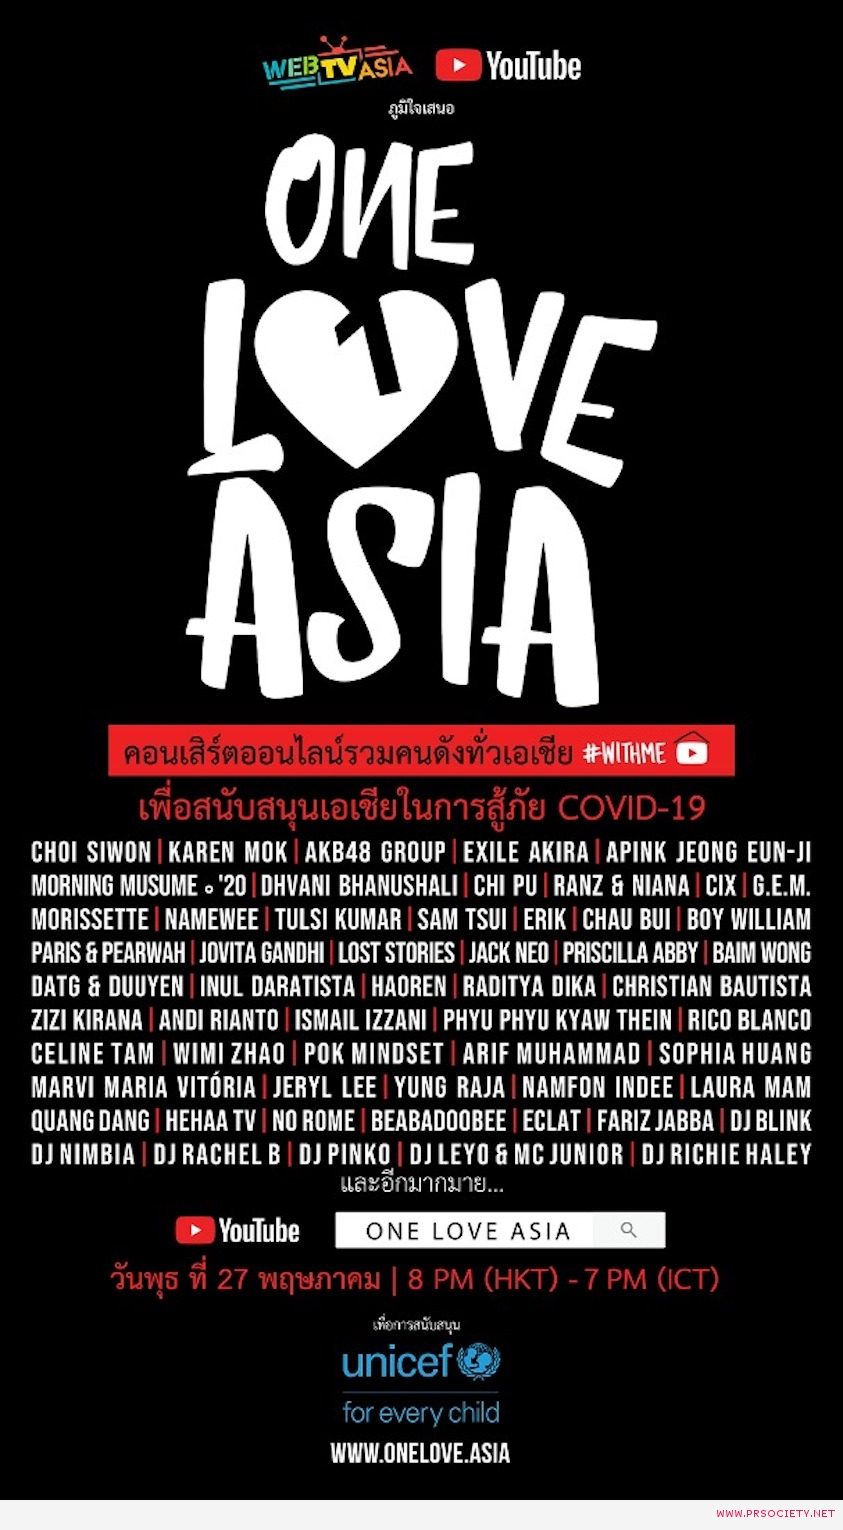 1.ONELOVEASIA TH POSTER